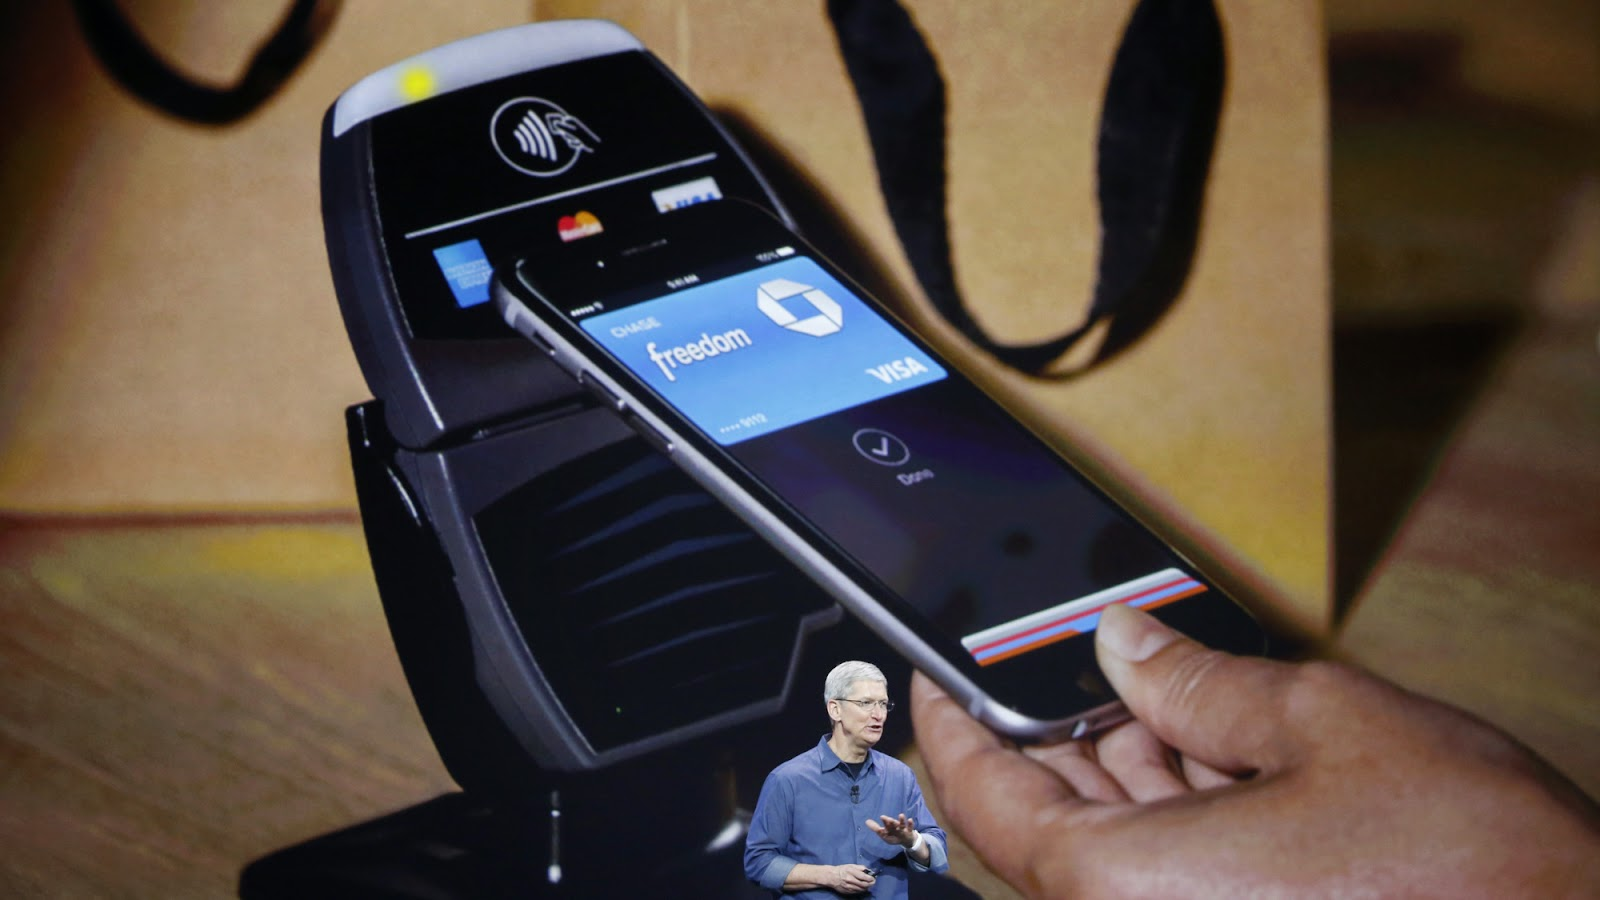 El apple pay y los posibles problemas con se encontrará